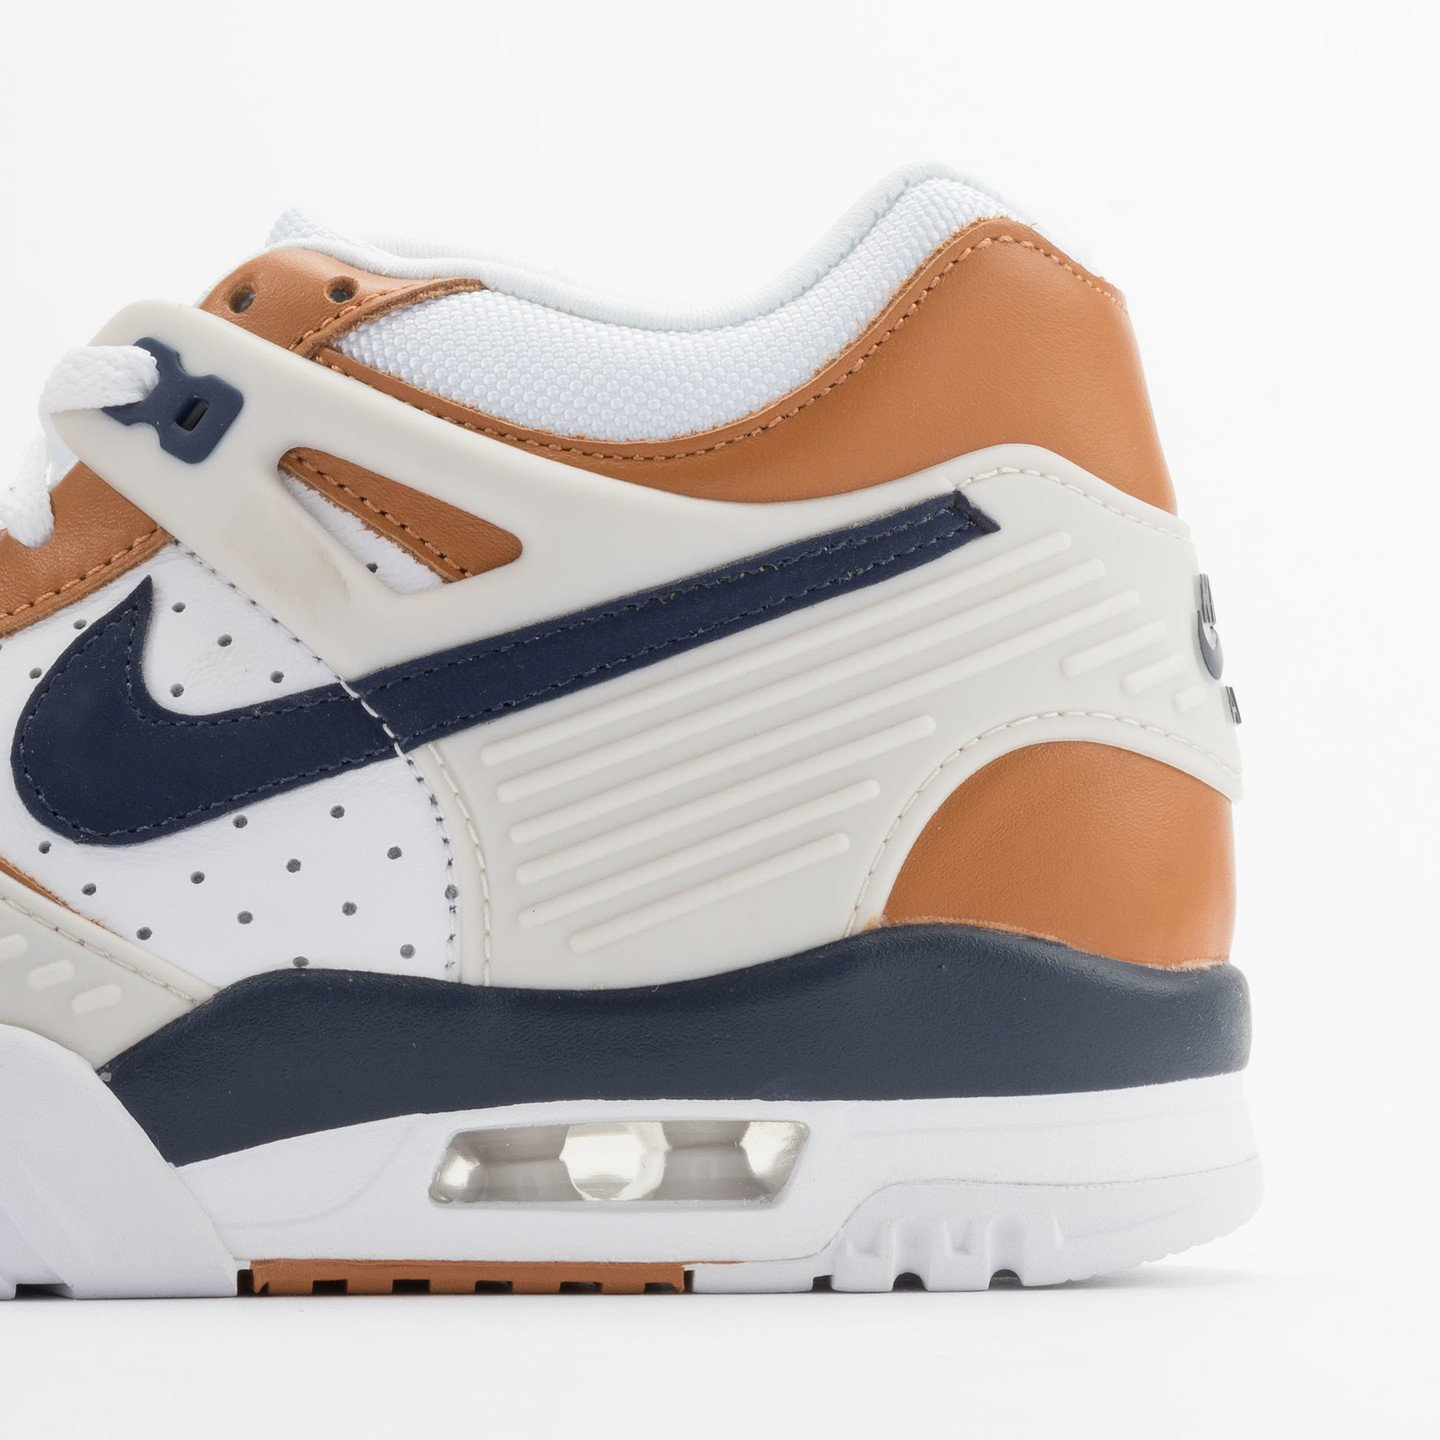 Nike Air Trainer 3 Premium Medicine Ball White/Mid Navy-Gngr-Lght Bn 705425-100-41